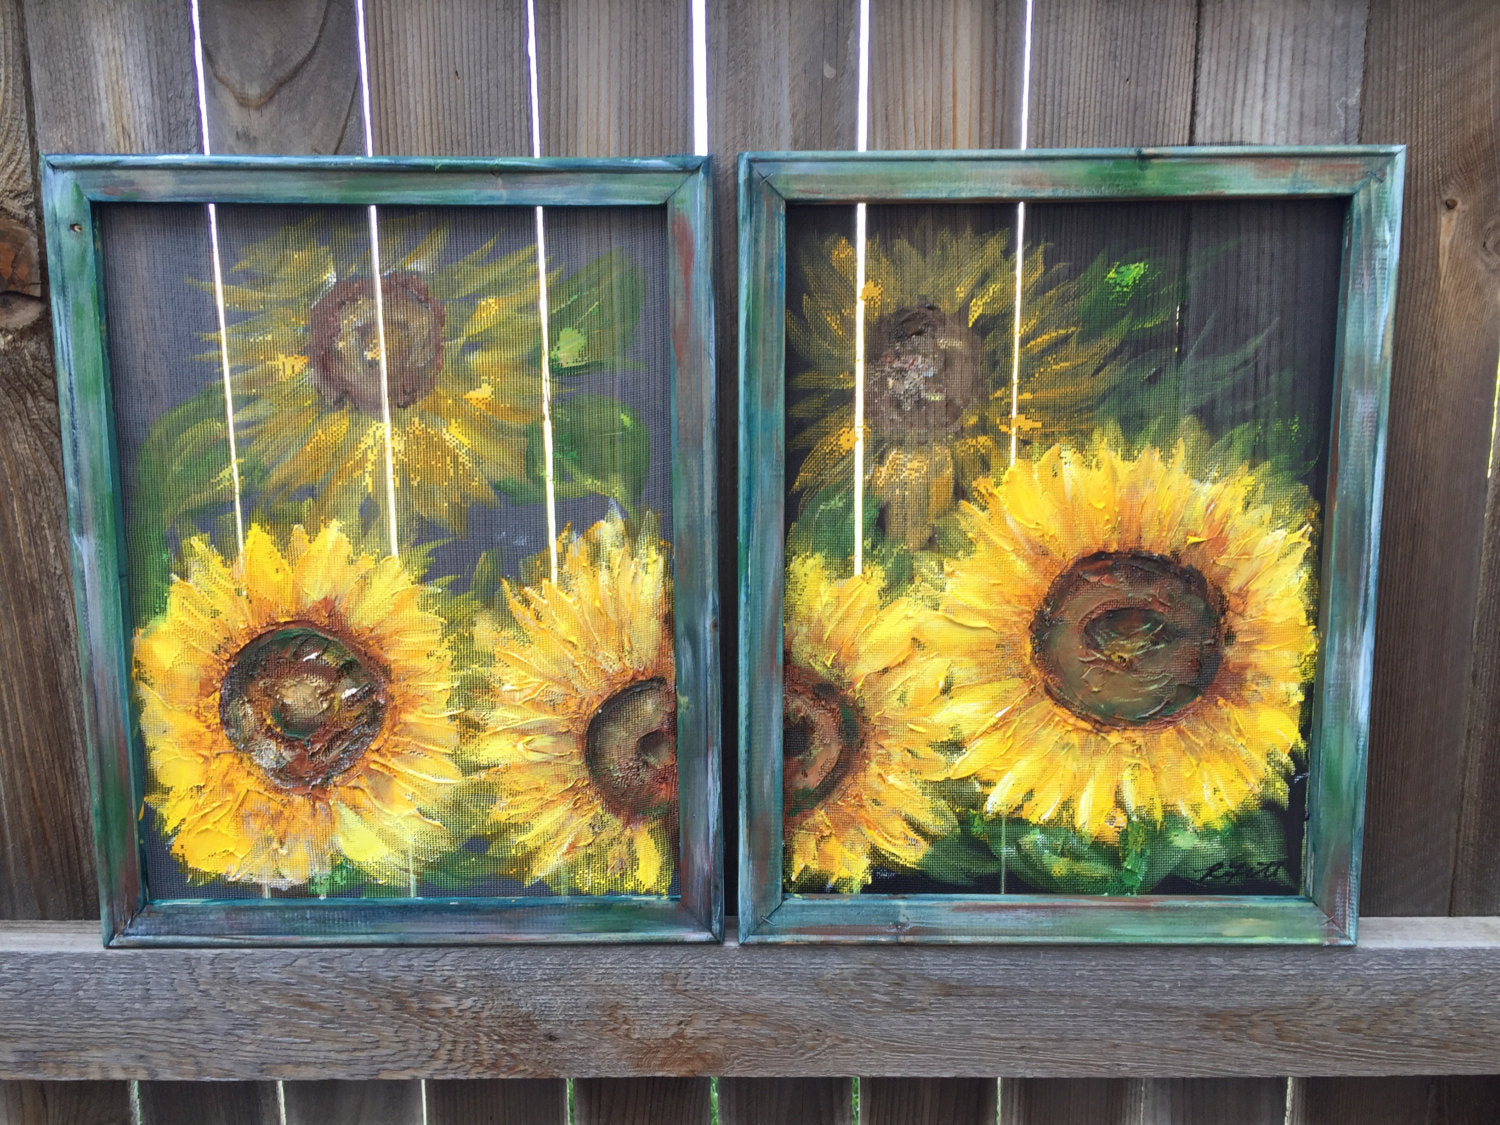 Set of 2 Sunflower Art MADE TO ORDER- Original Art, sunflower,recycled wood frame, painted on screen sunflower painting. sunflower